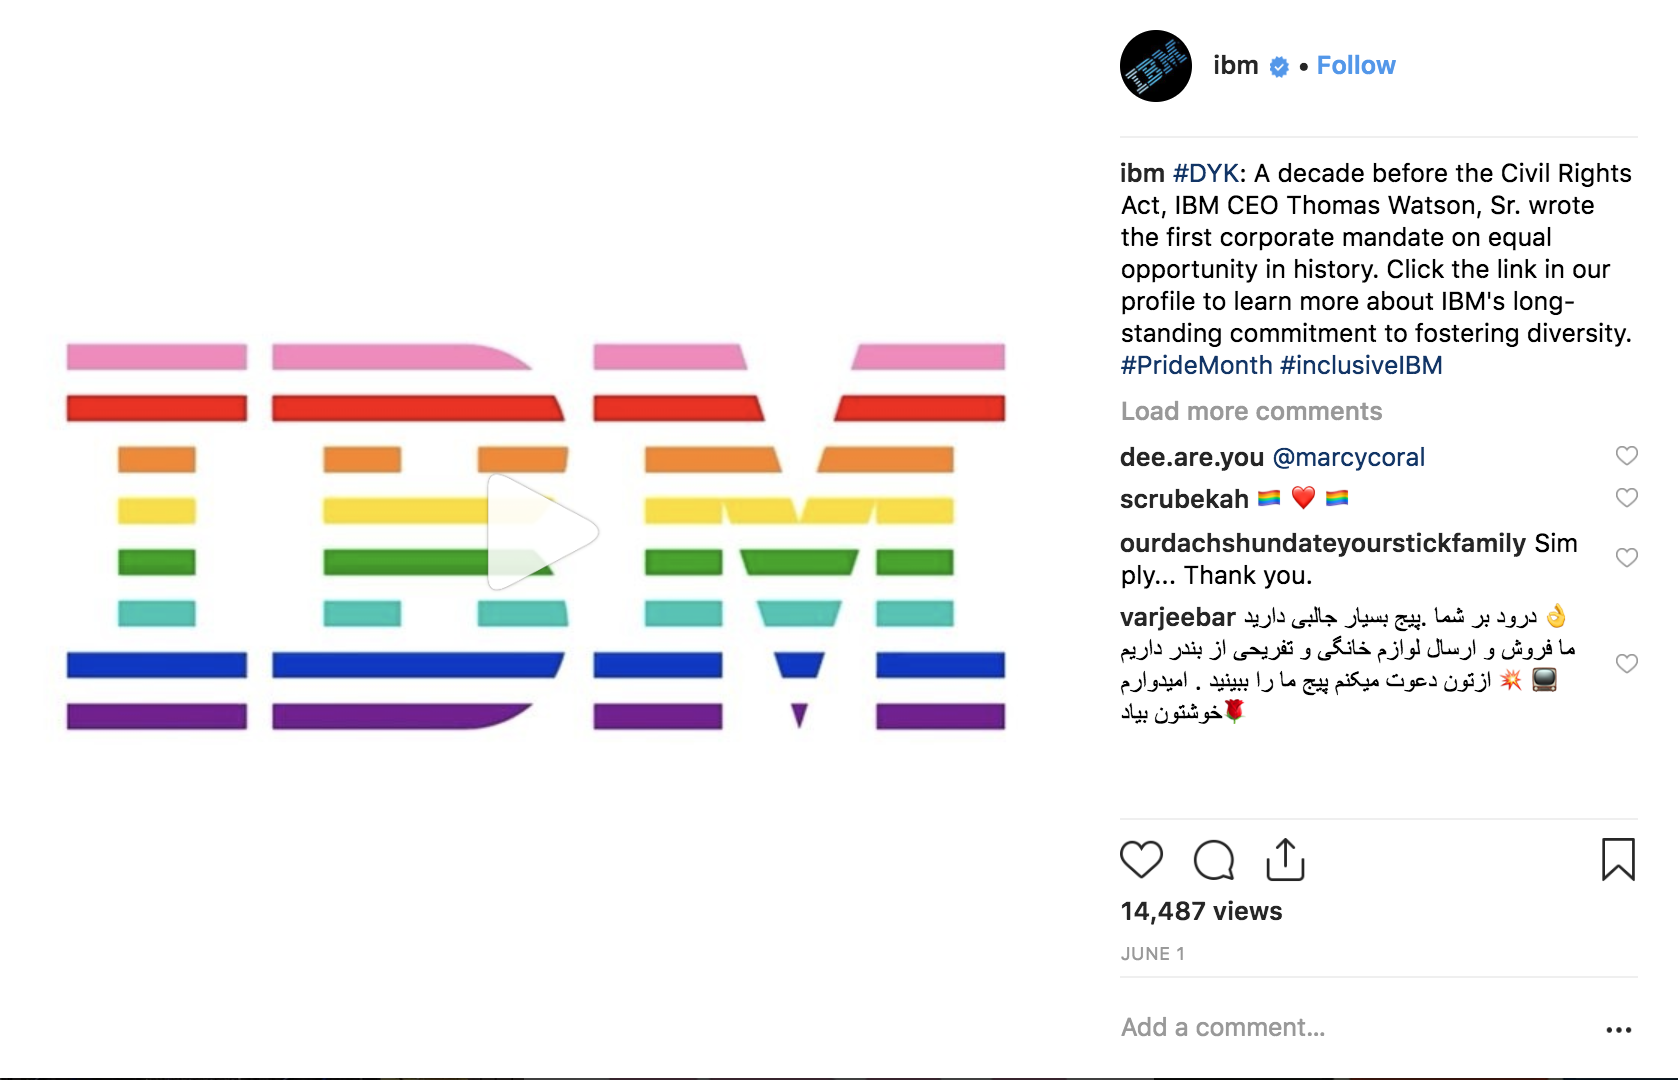 Best Instagram Campaigns 2018 - IBM - Sked Social